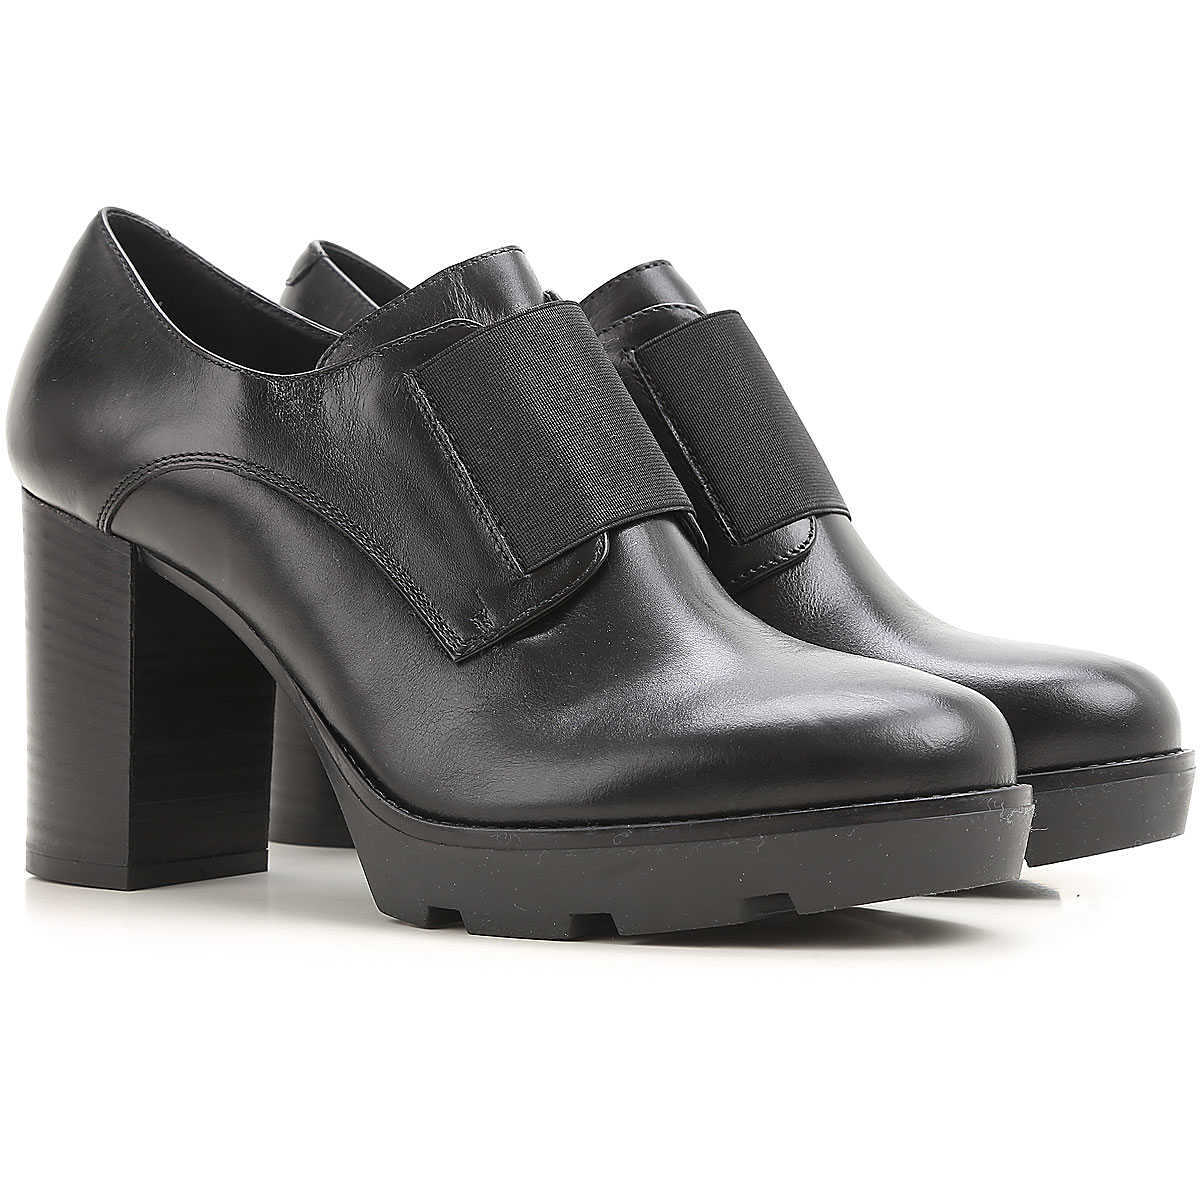 Janet & Janet Boots for Women 3.5 5.5 Booties On Sale UK - GOOFASH